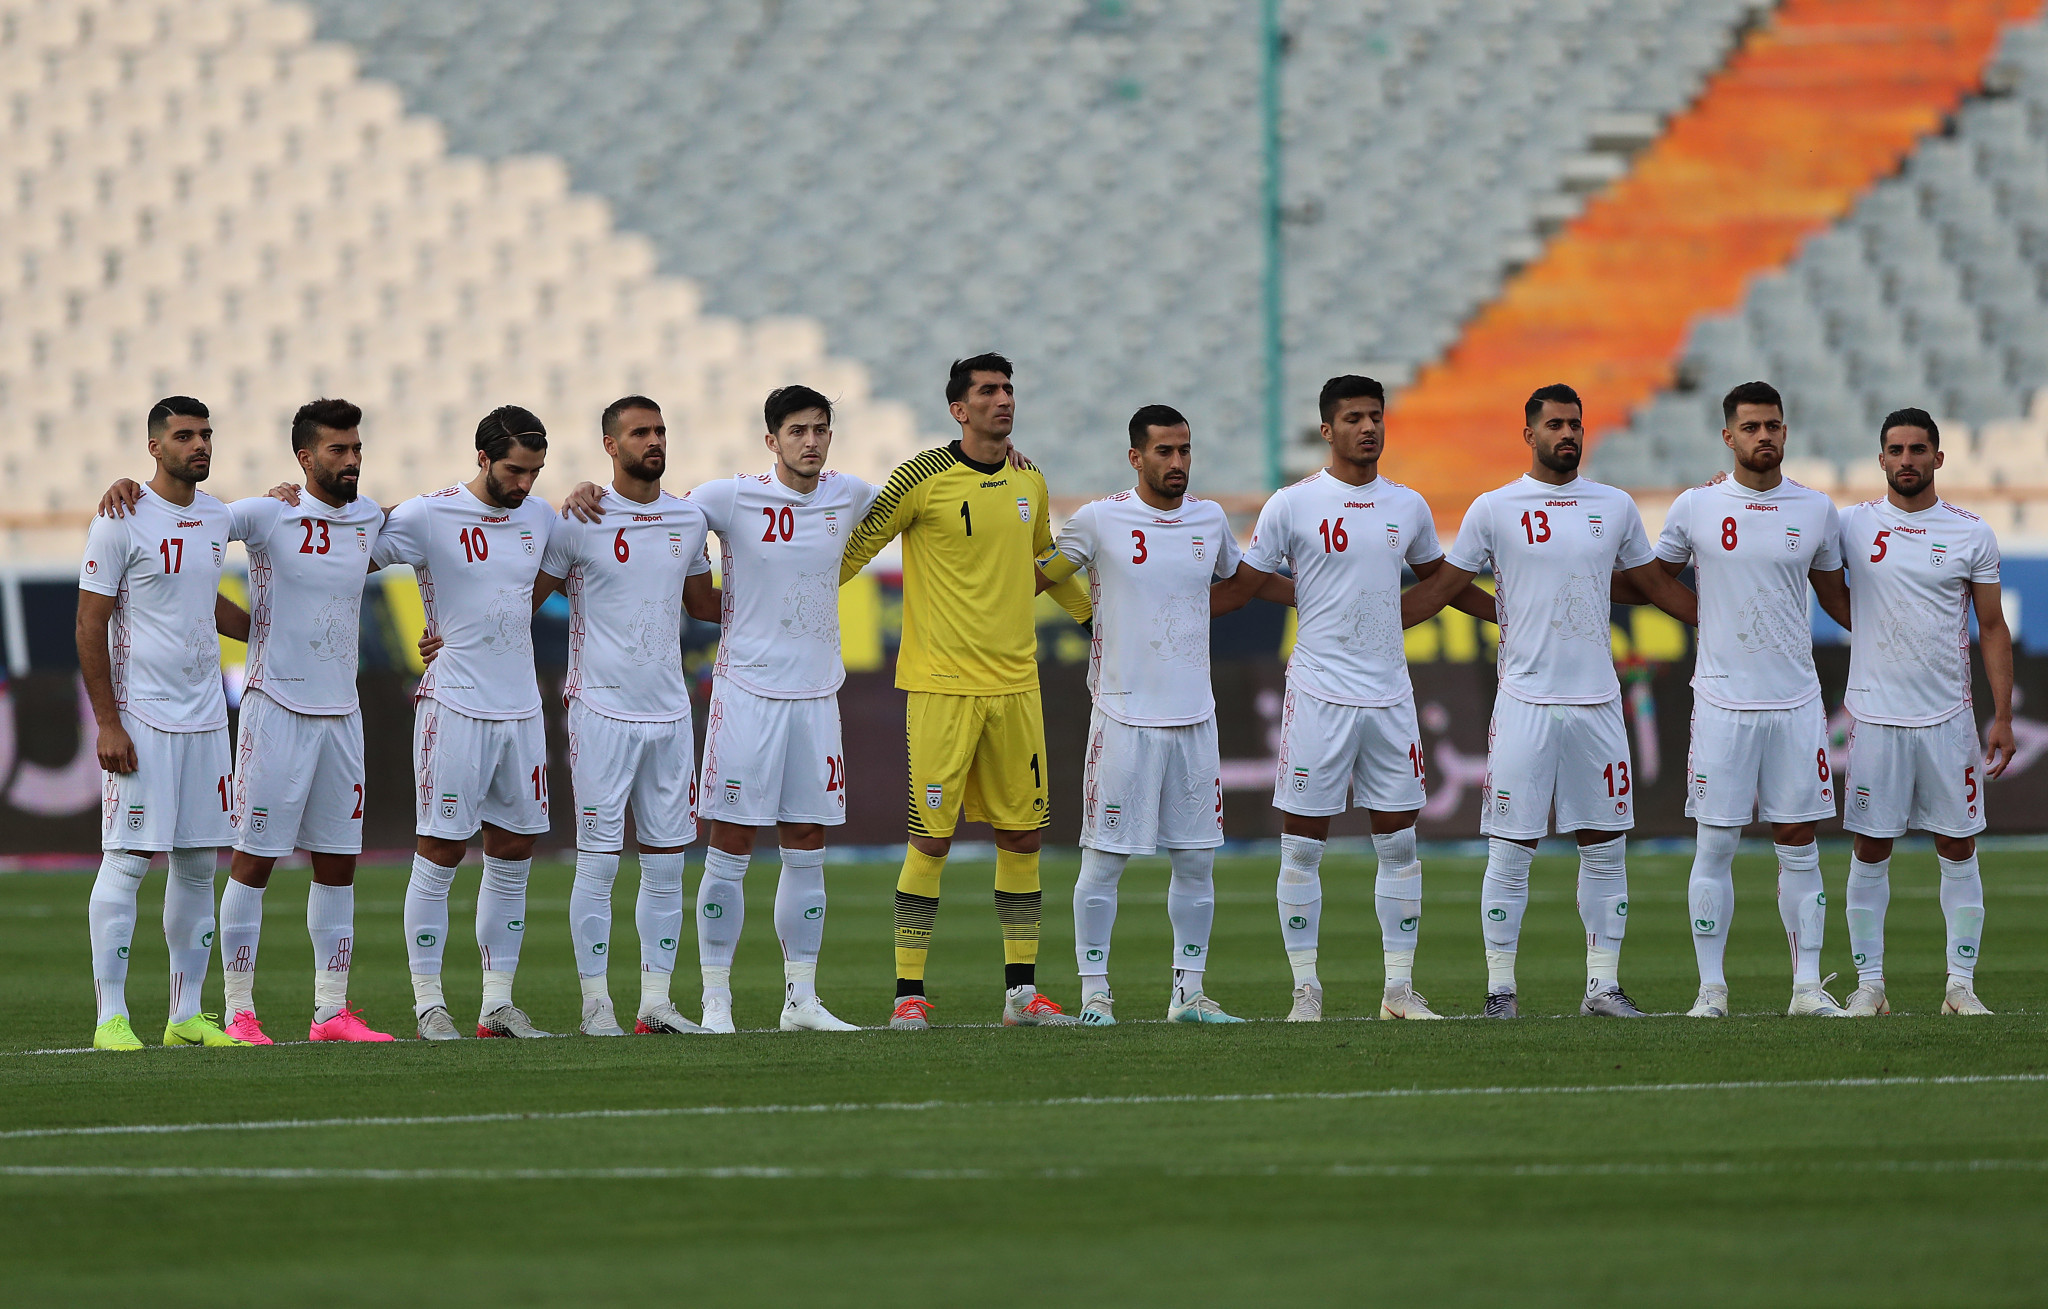 """Minor changes"" needed for Iranian statutes to be approved by FIFA"